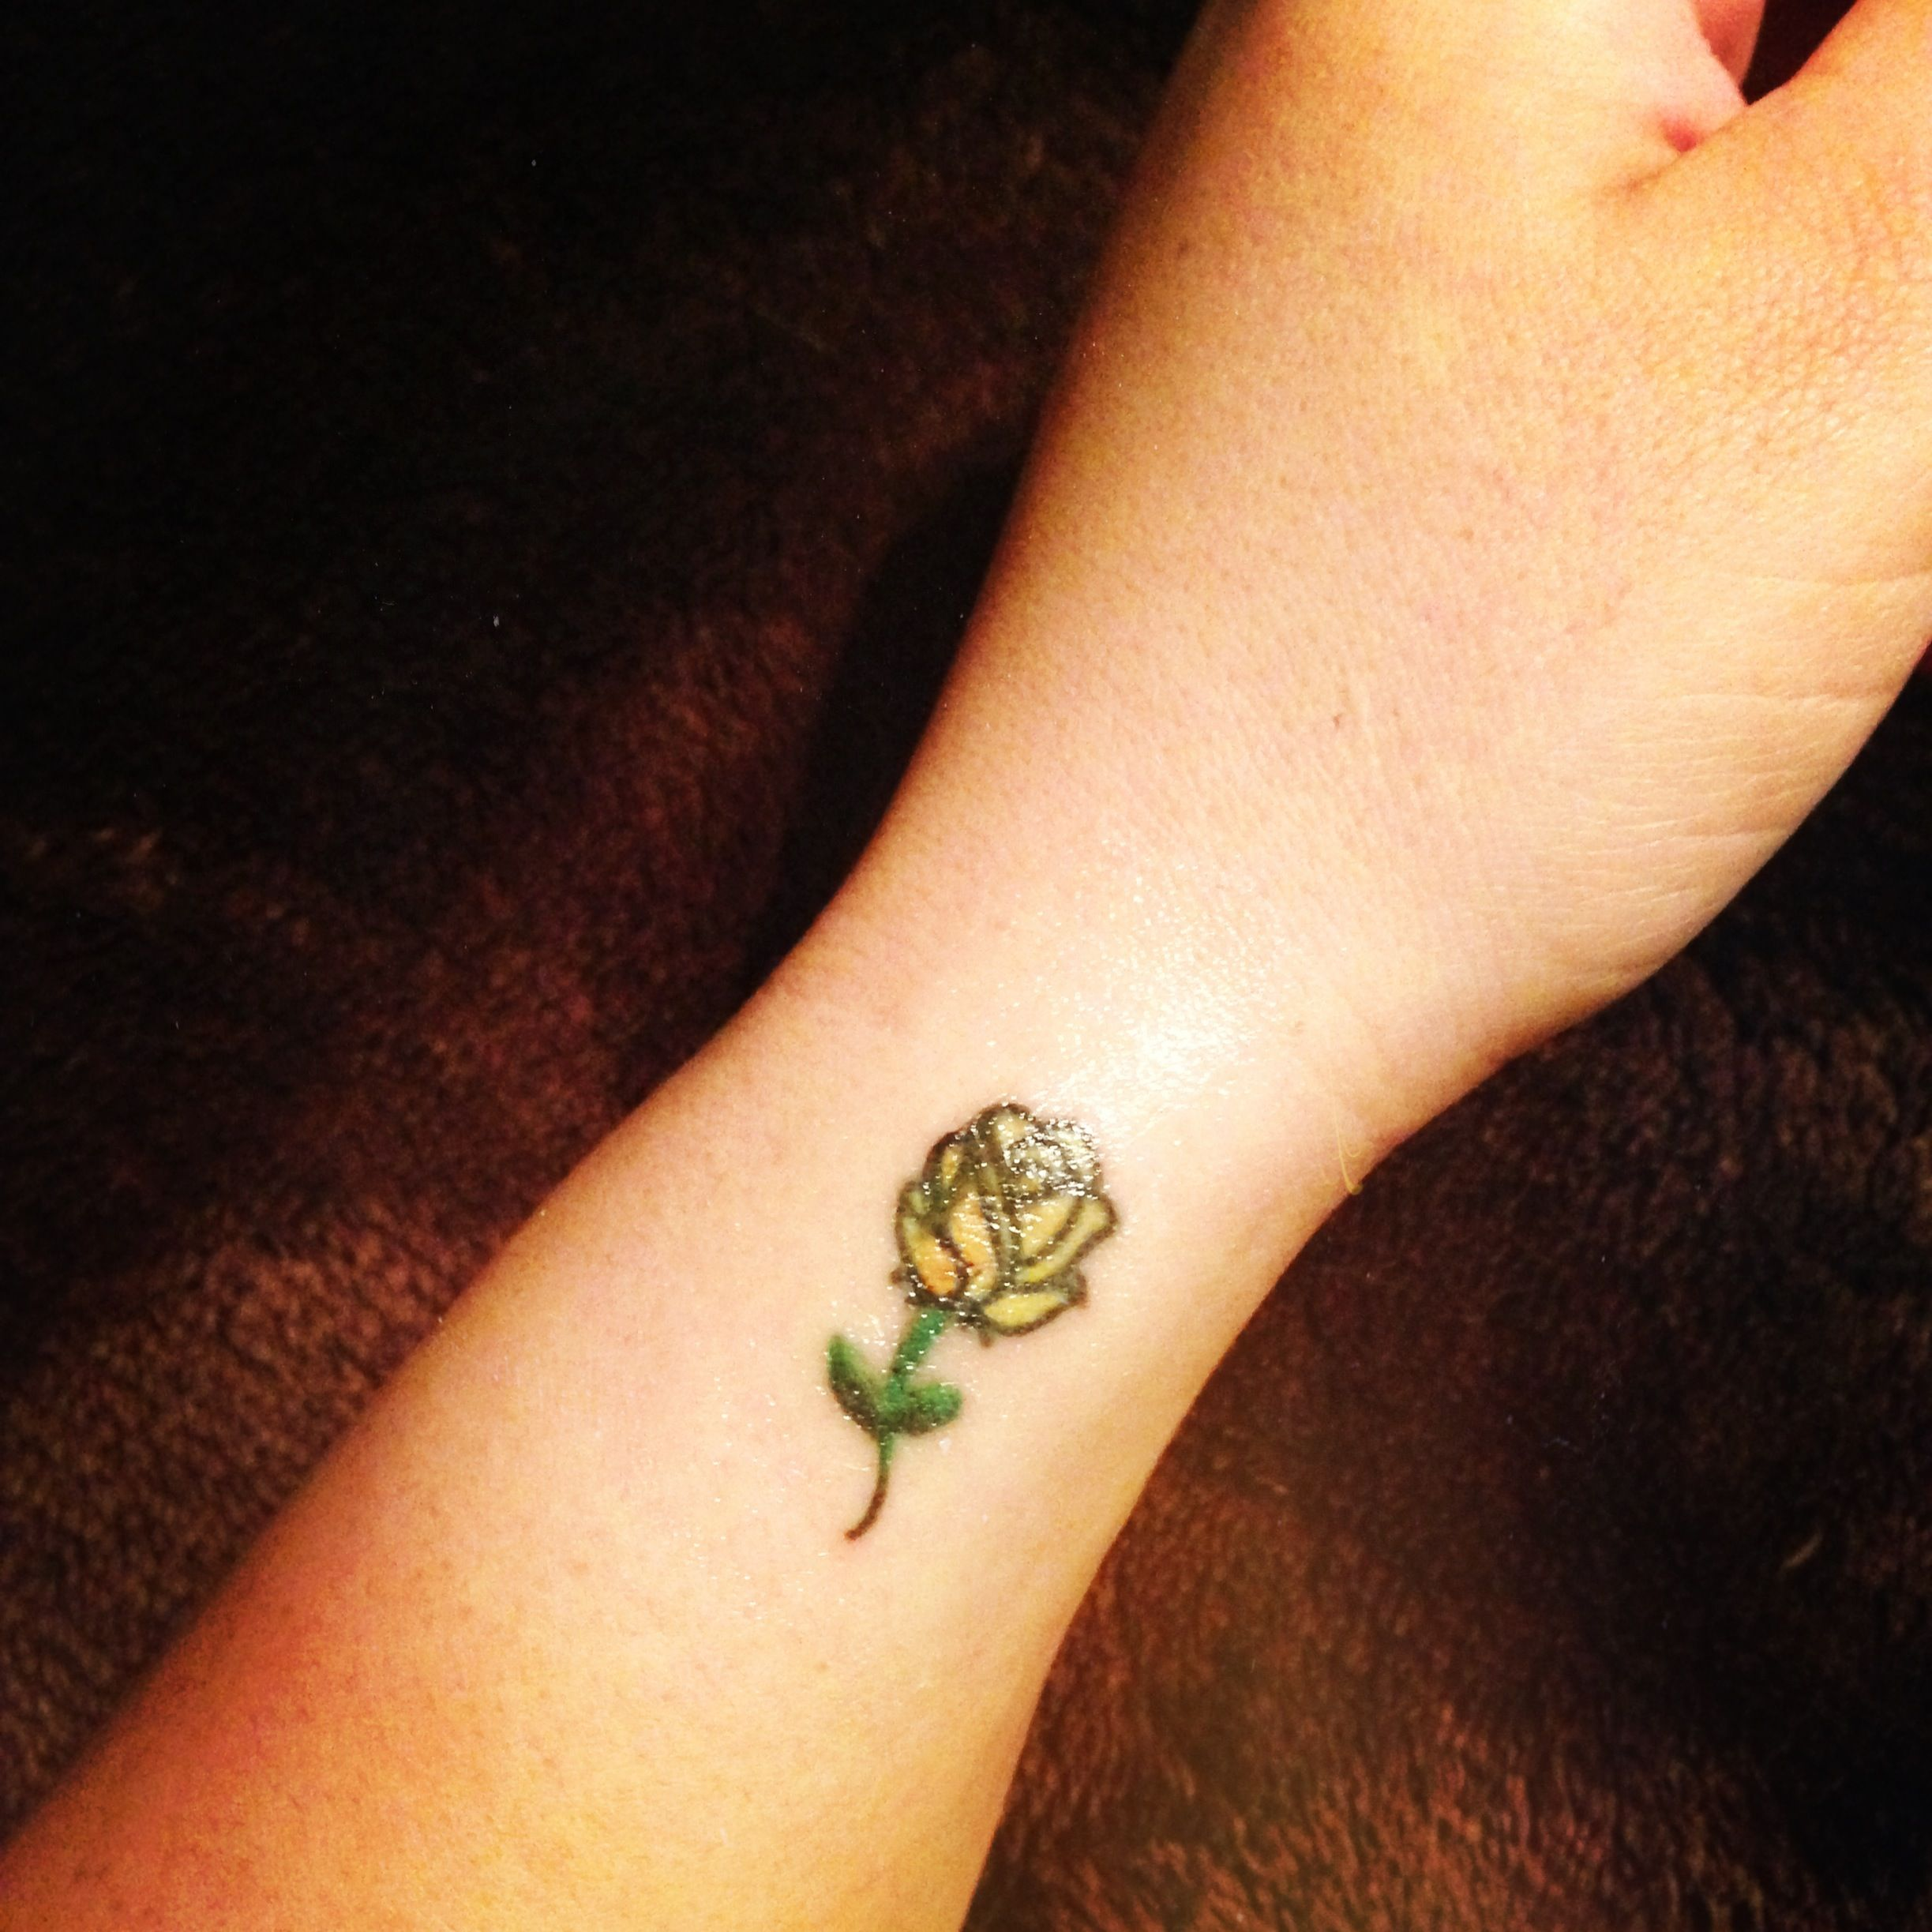 Small Tattoo For Women Small Rose Tattoo Yellow Rose Tattoo Yellow Rose Tattoos Small Rose Tattoo Rose Tattoo